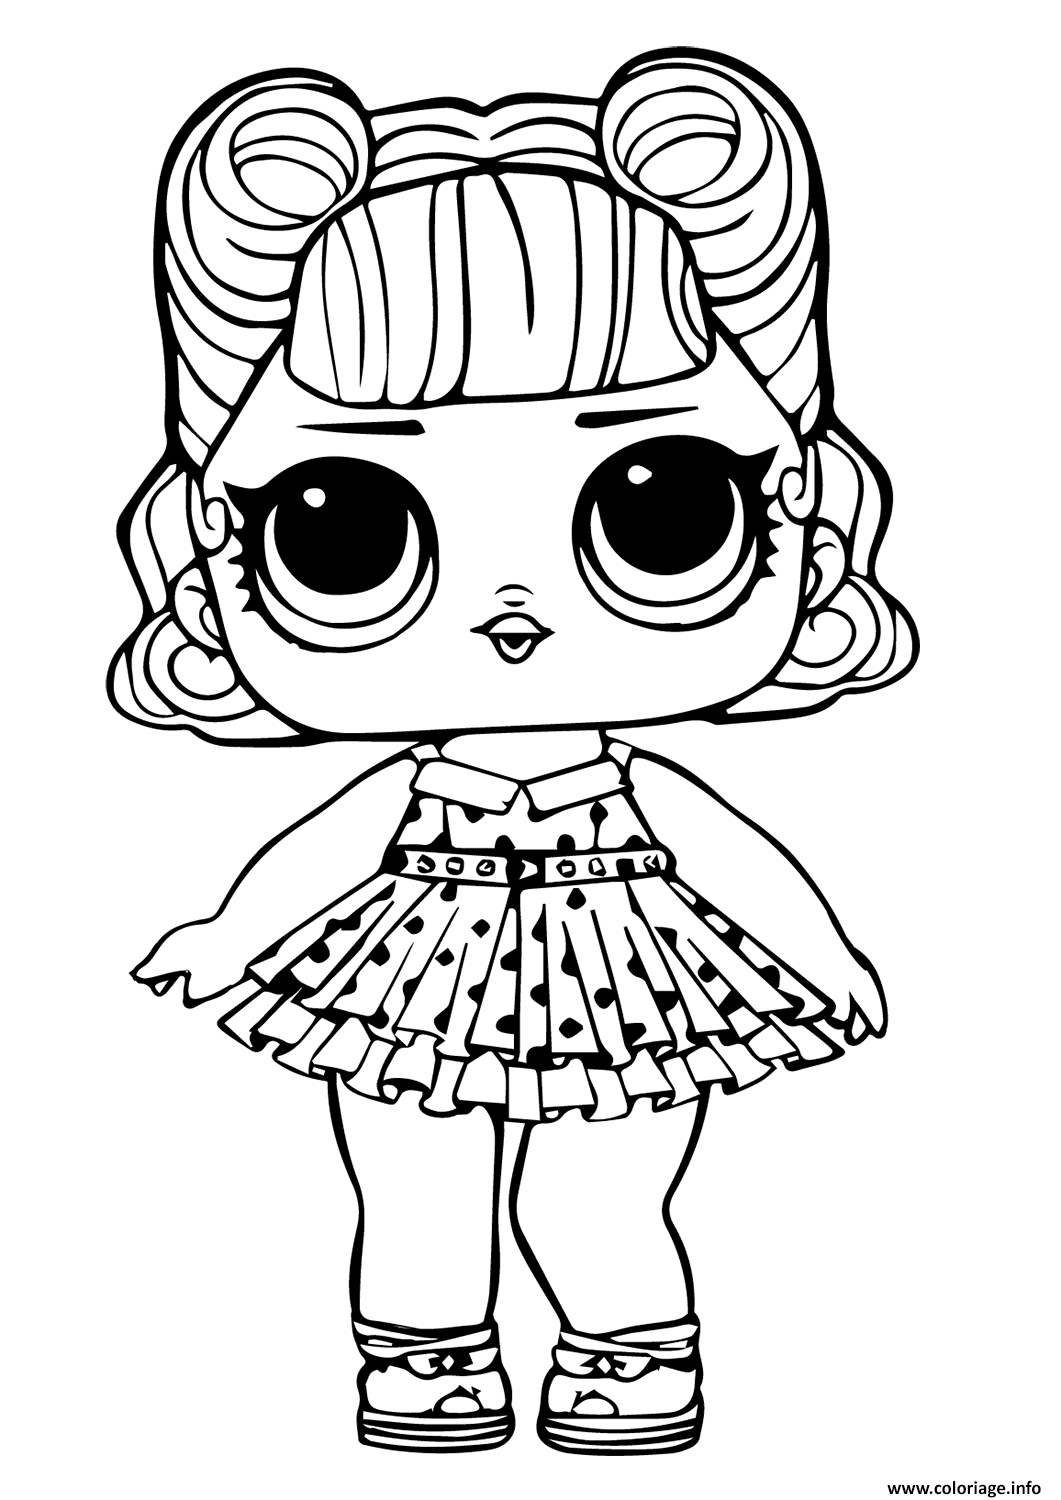 Coloriage lol doll jitterbug - JeColorie.com